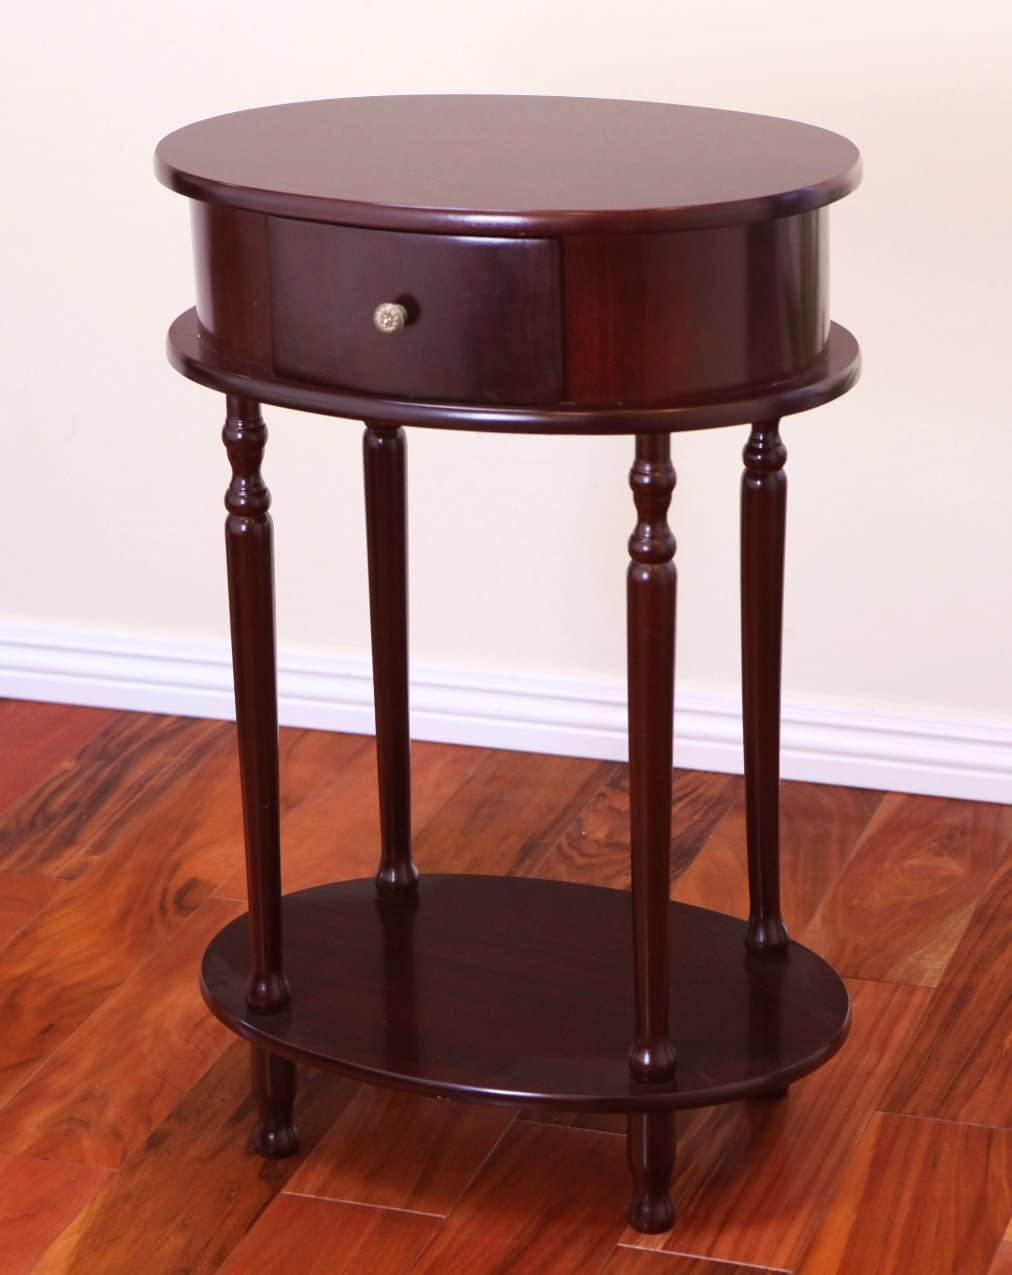 Frenchi Home Furnihisng End Table/Side Table